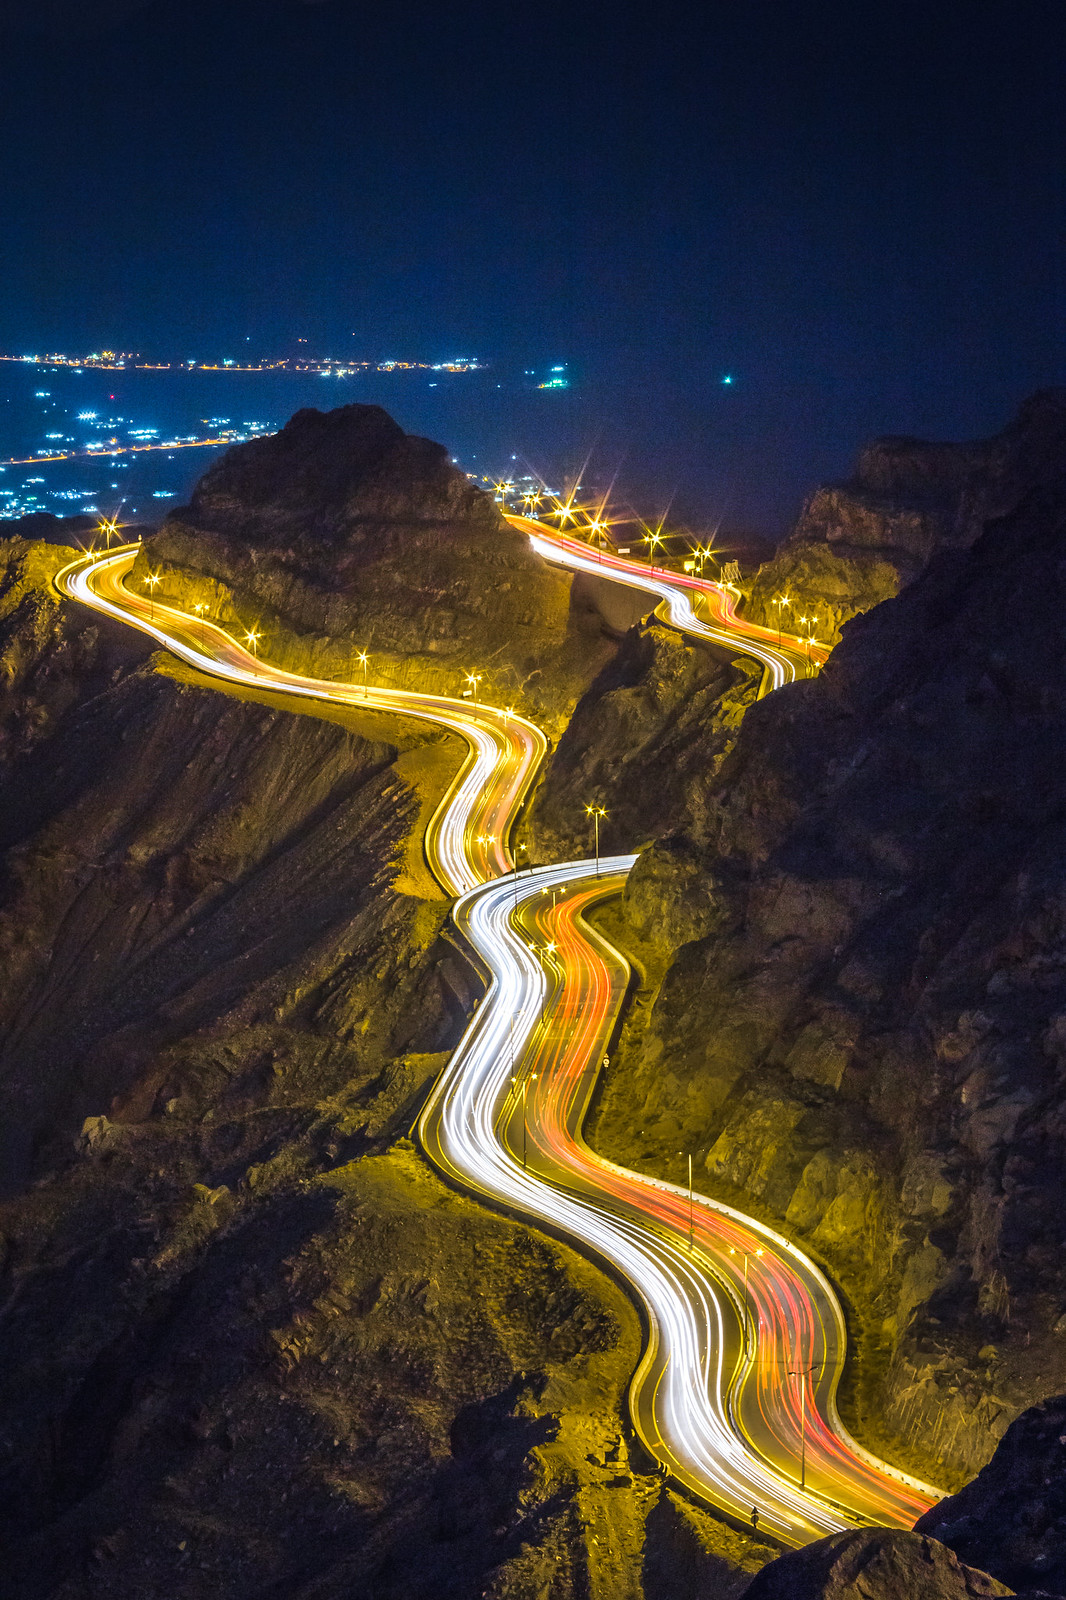 Alhada Mountain Highway at Night Makkah Region Saudi Arabia (7)